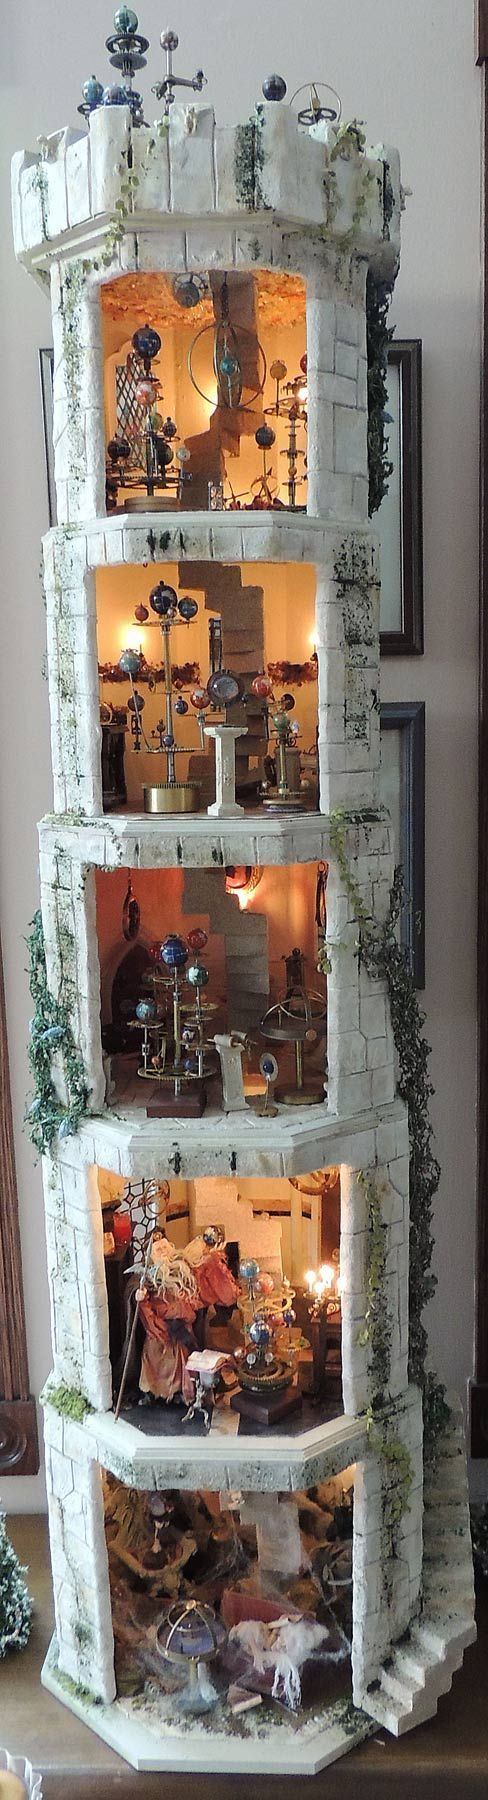 fulltower (the Five Tiered Tower. Go through to Magical Miniatures for a closer look) is creative inspiration for us. Get more photo about home decor related with by looking at photos gallery at the bottom of this page. We are want to say thanks if you like to share this …